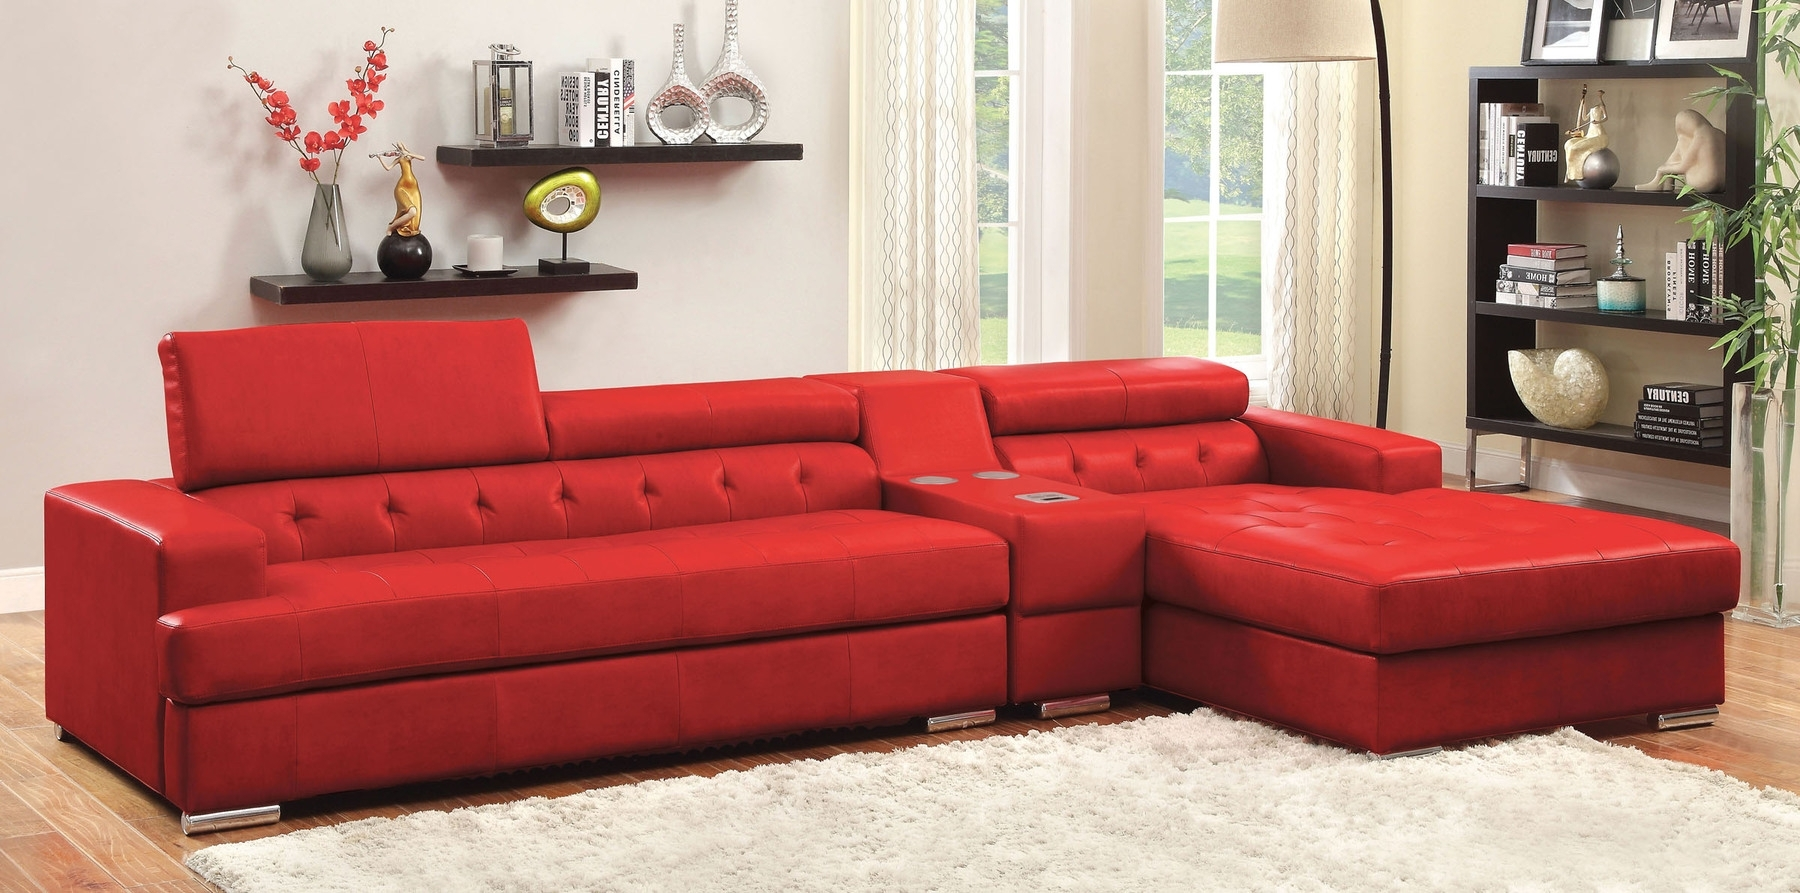 Fashionable Red Sectional Sofas In Floria Red Sectional Sofa Cm6122 Furniture Of America Sectional (View 16 of 20)